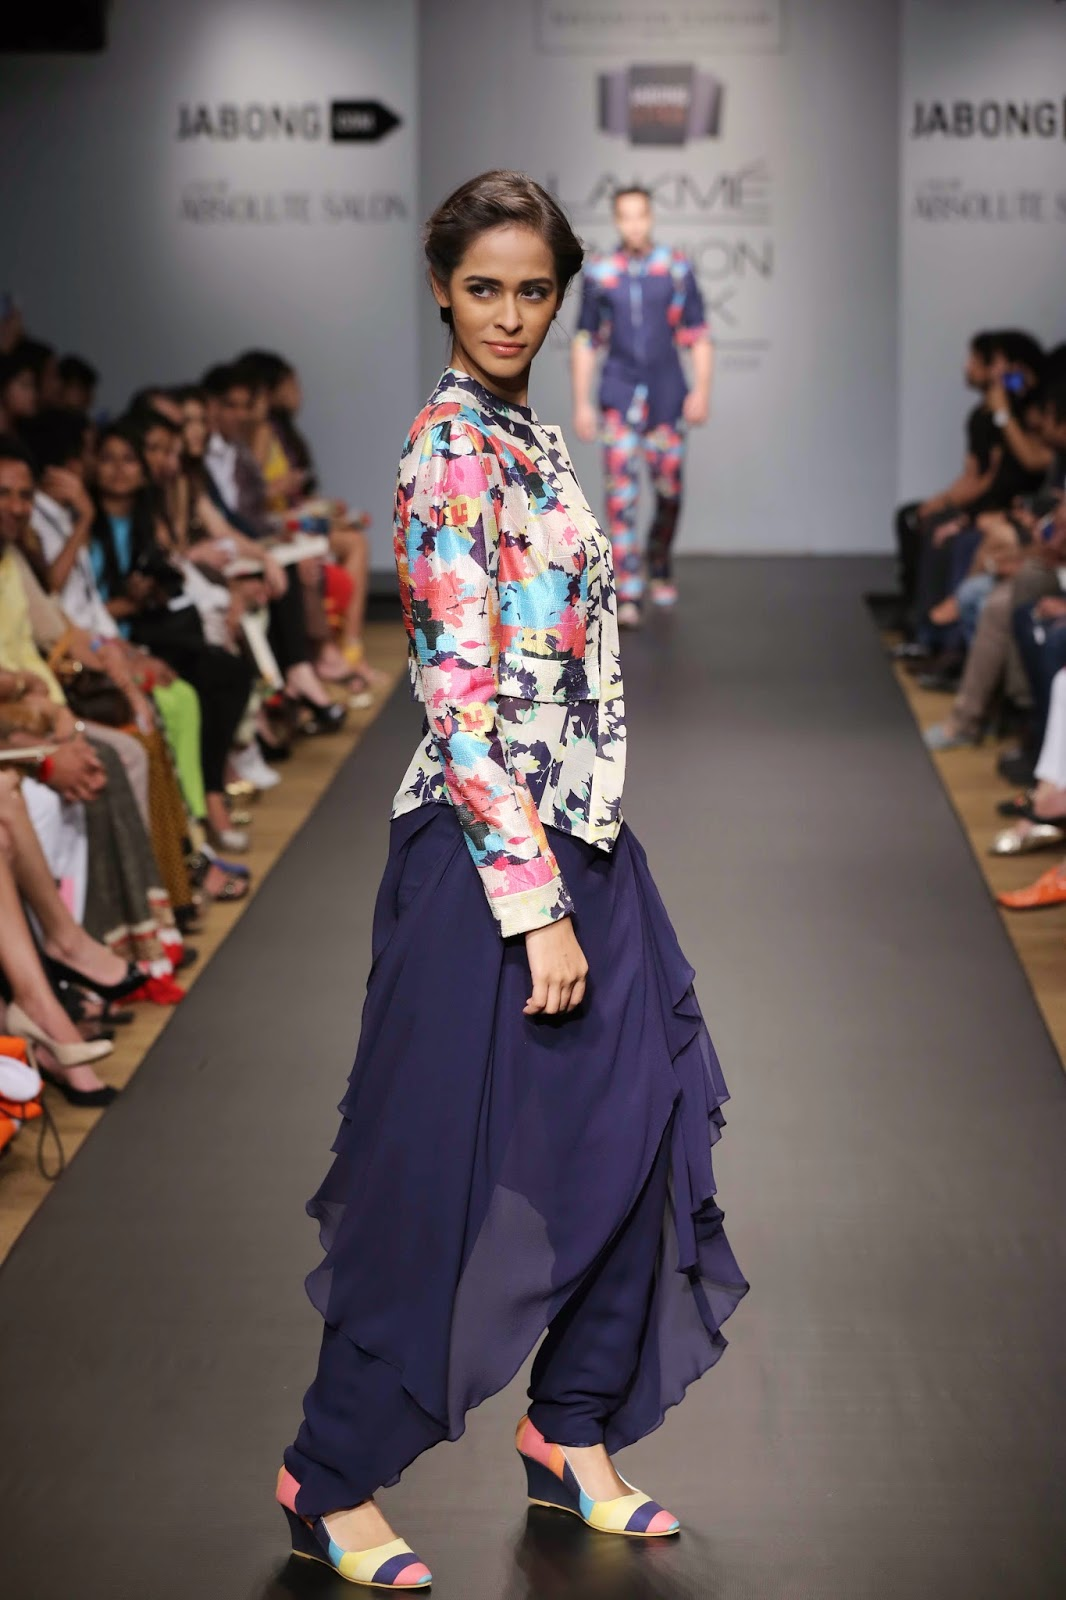 Sayantan Sarkar showcased a high-end line of evening wear christened 'A Motley Love' at Jabong Stage during Lakmé Fashion Week Summer/Resort 2014.